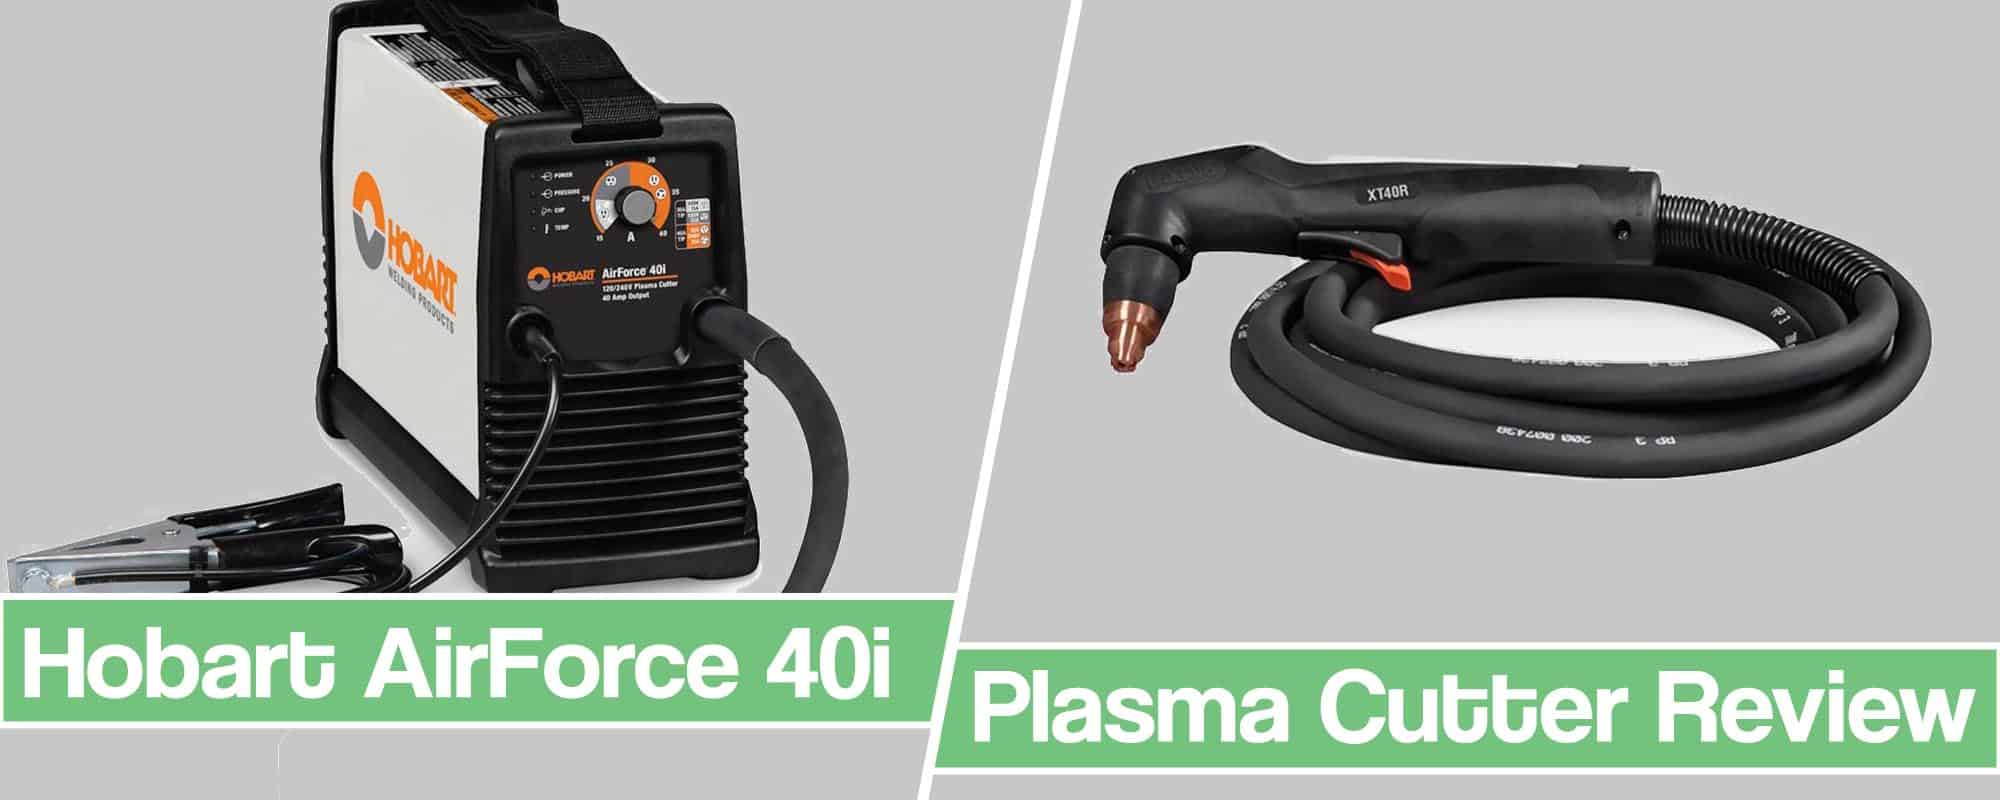 Feature image for Hobart 40i Plasma Cutter review article